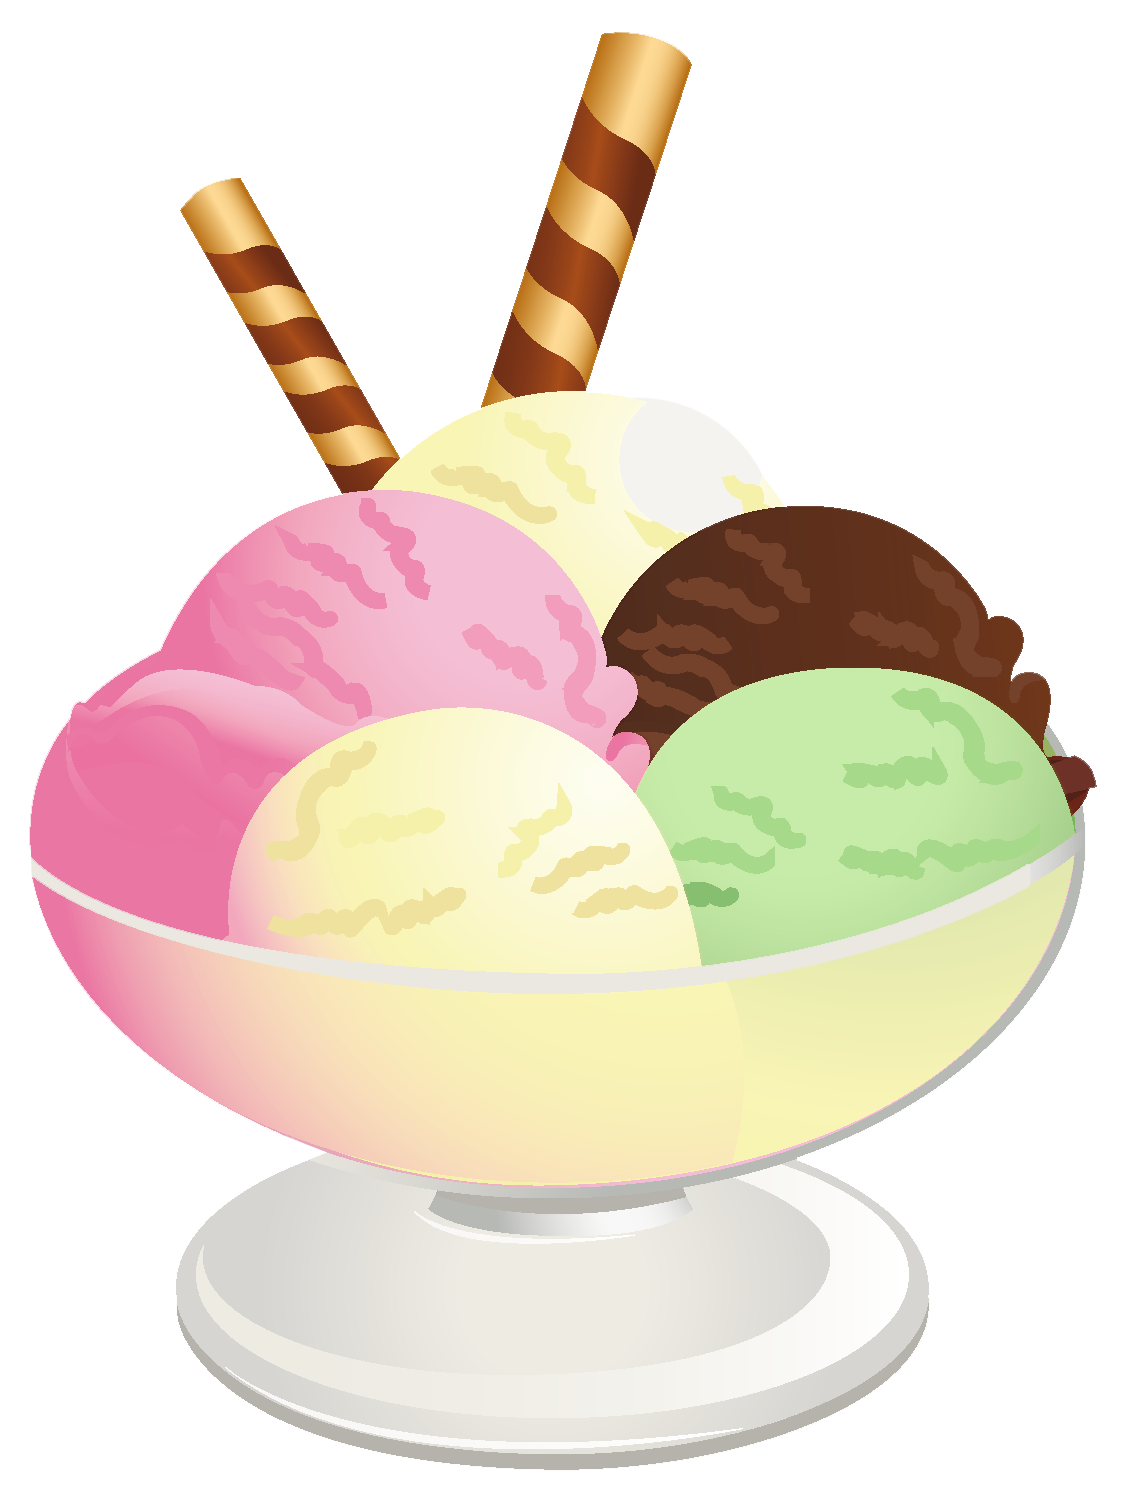 pin by petit m n on scrap digital pinterest clip art play food rh pinterest com ice cream sundae clip art border ice cream sundae clip art for kids